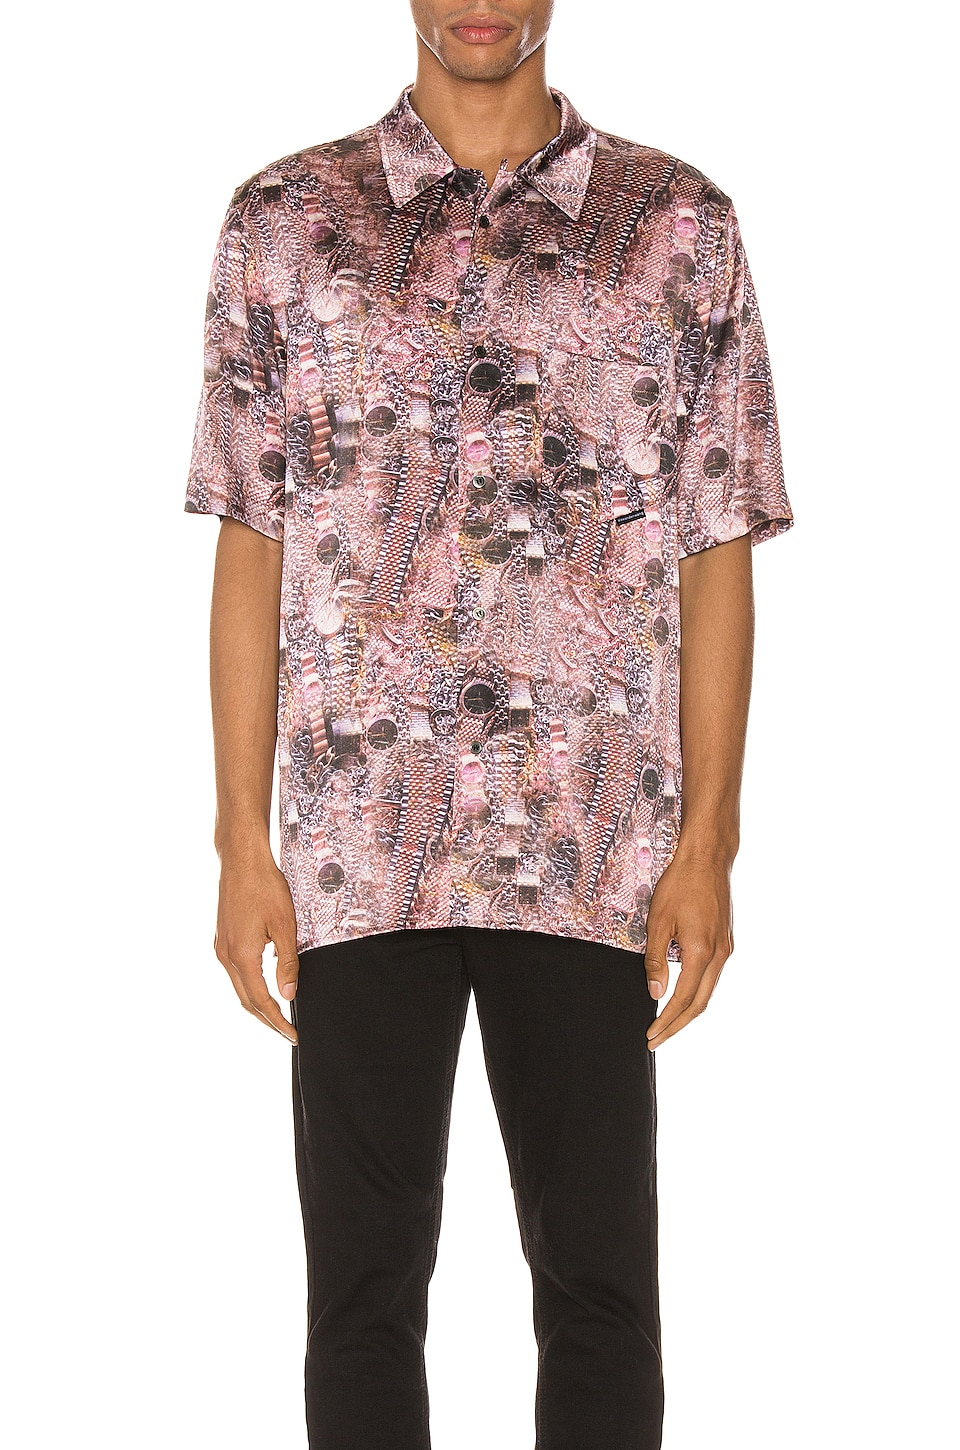 Alexander Wang Printed Silk Shirt en Hustler Repeat